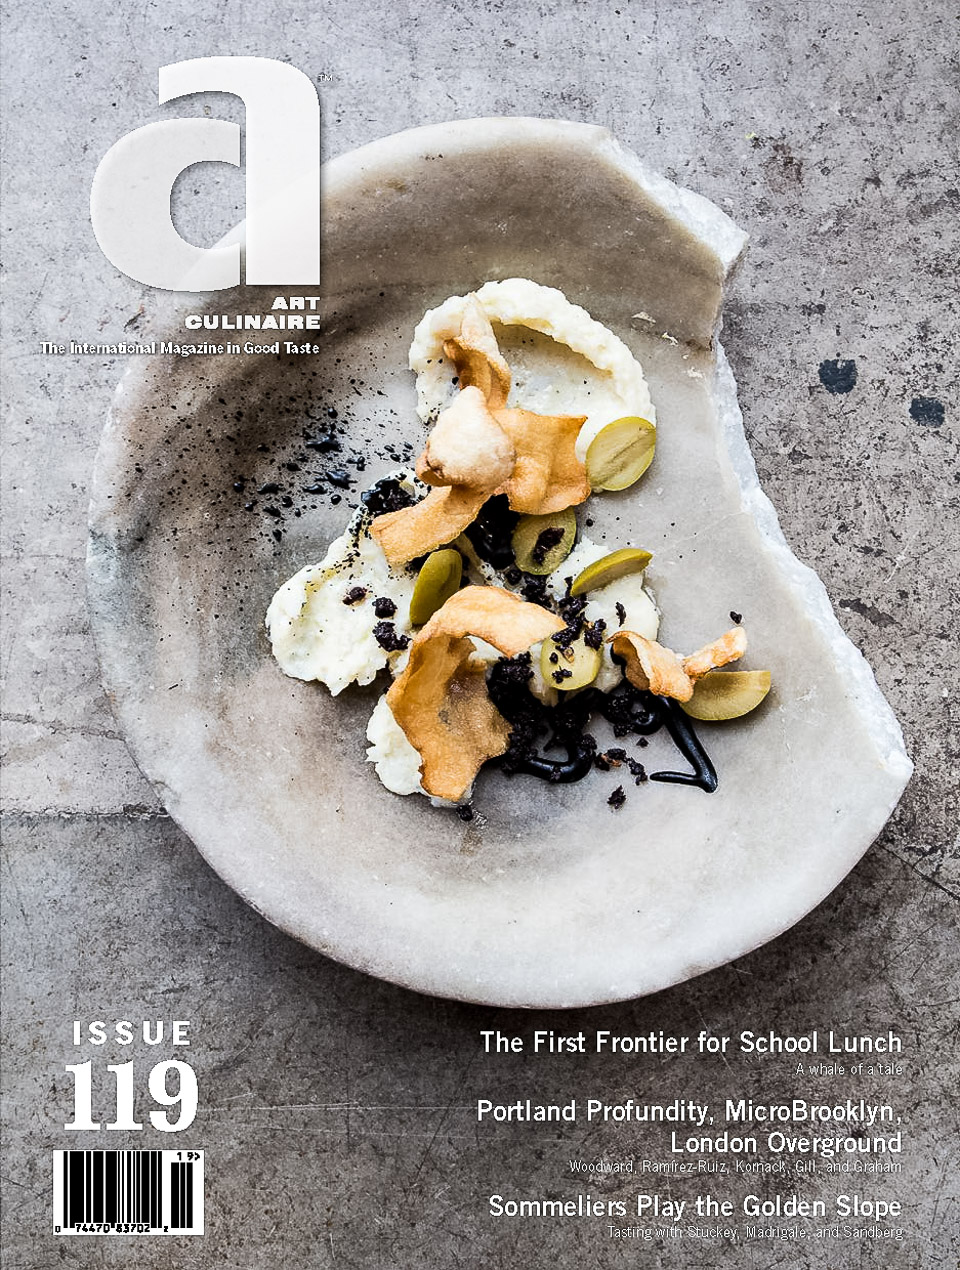 Art Culinaire 119 Cover |www.jonathanthompsonphotography.com